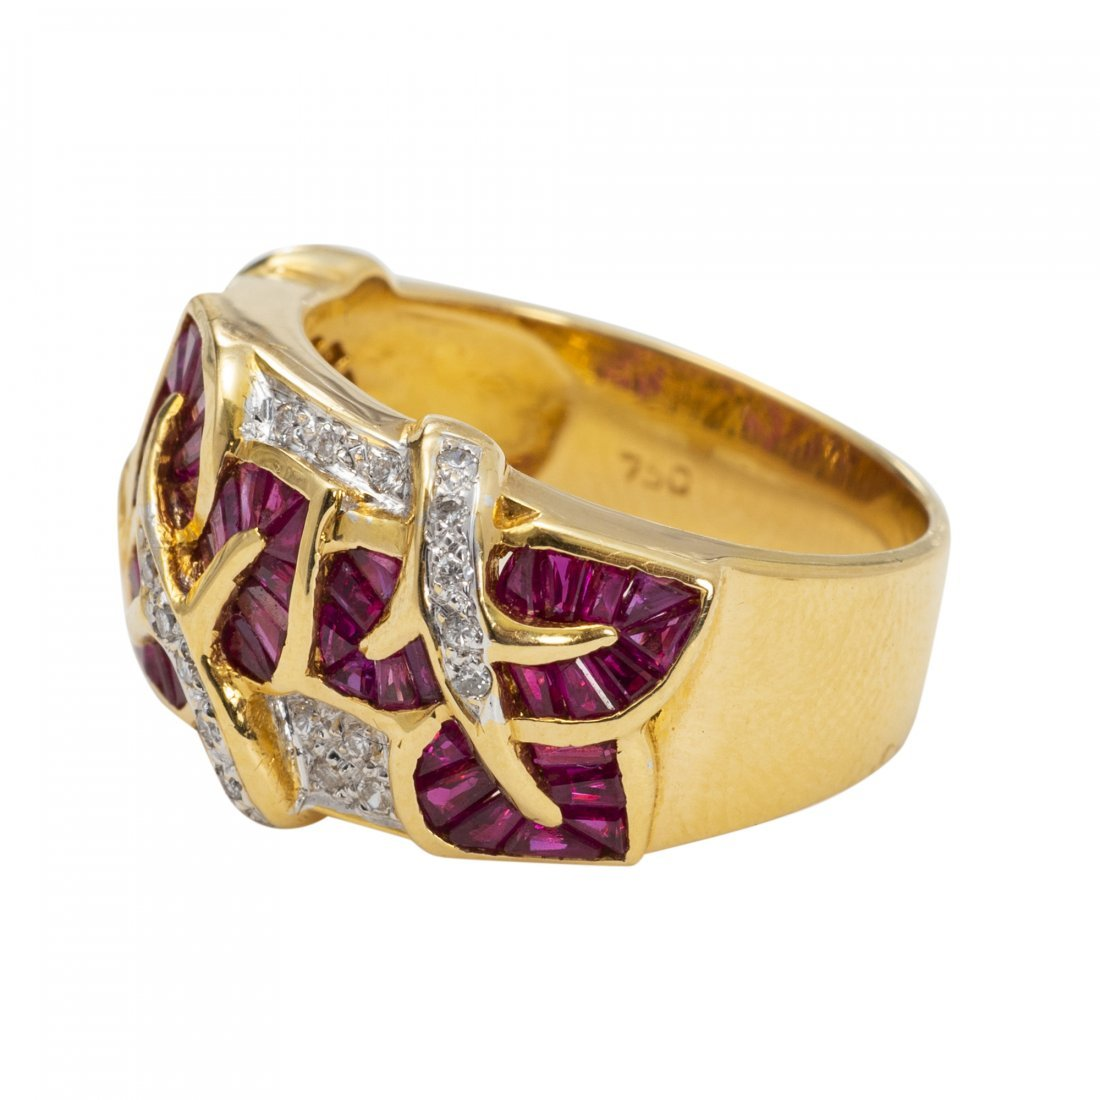 18kt Gold, Ruby and Diamond Ring - 2